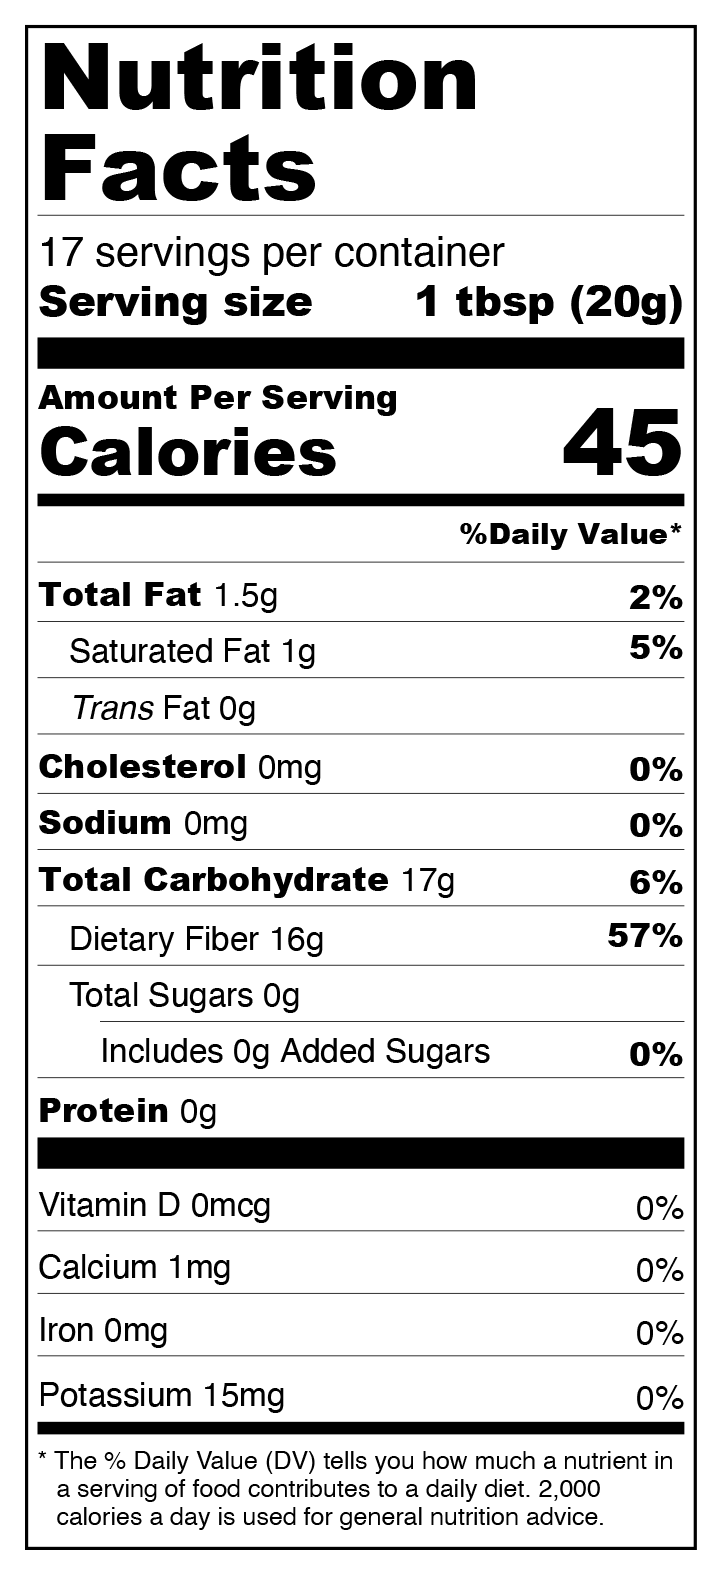 Sugar Free Chocolate Syrup - Keto, Low Carb Nutrition Facts